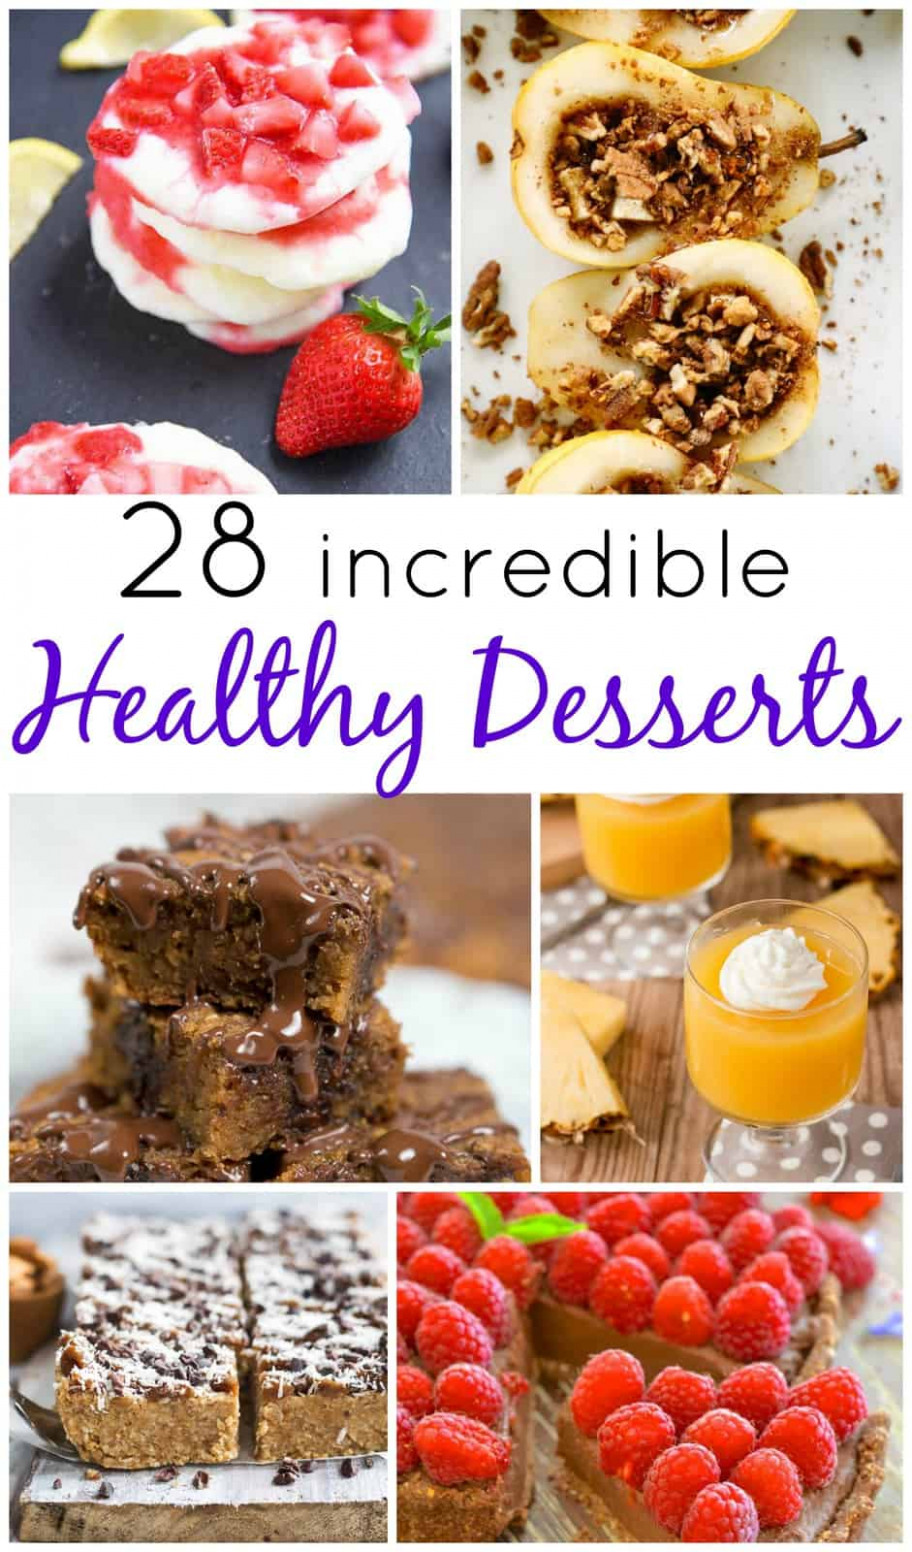 10+ Healthy Dessert Recipes - Bake Play Smile